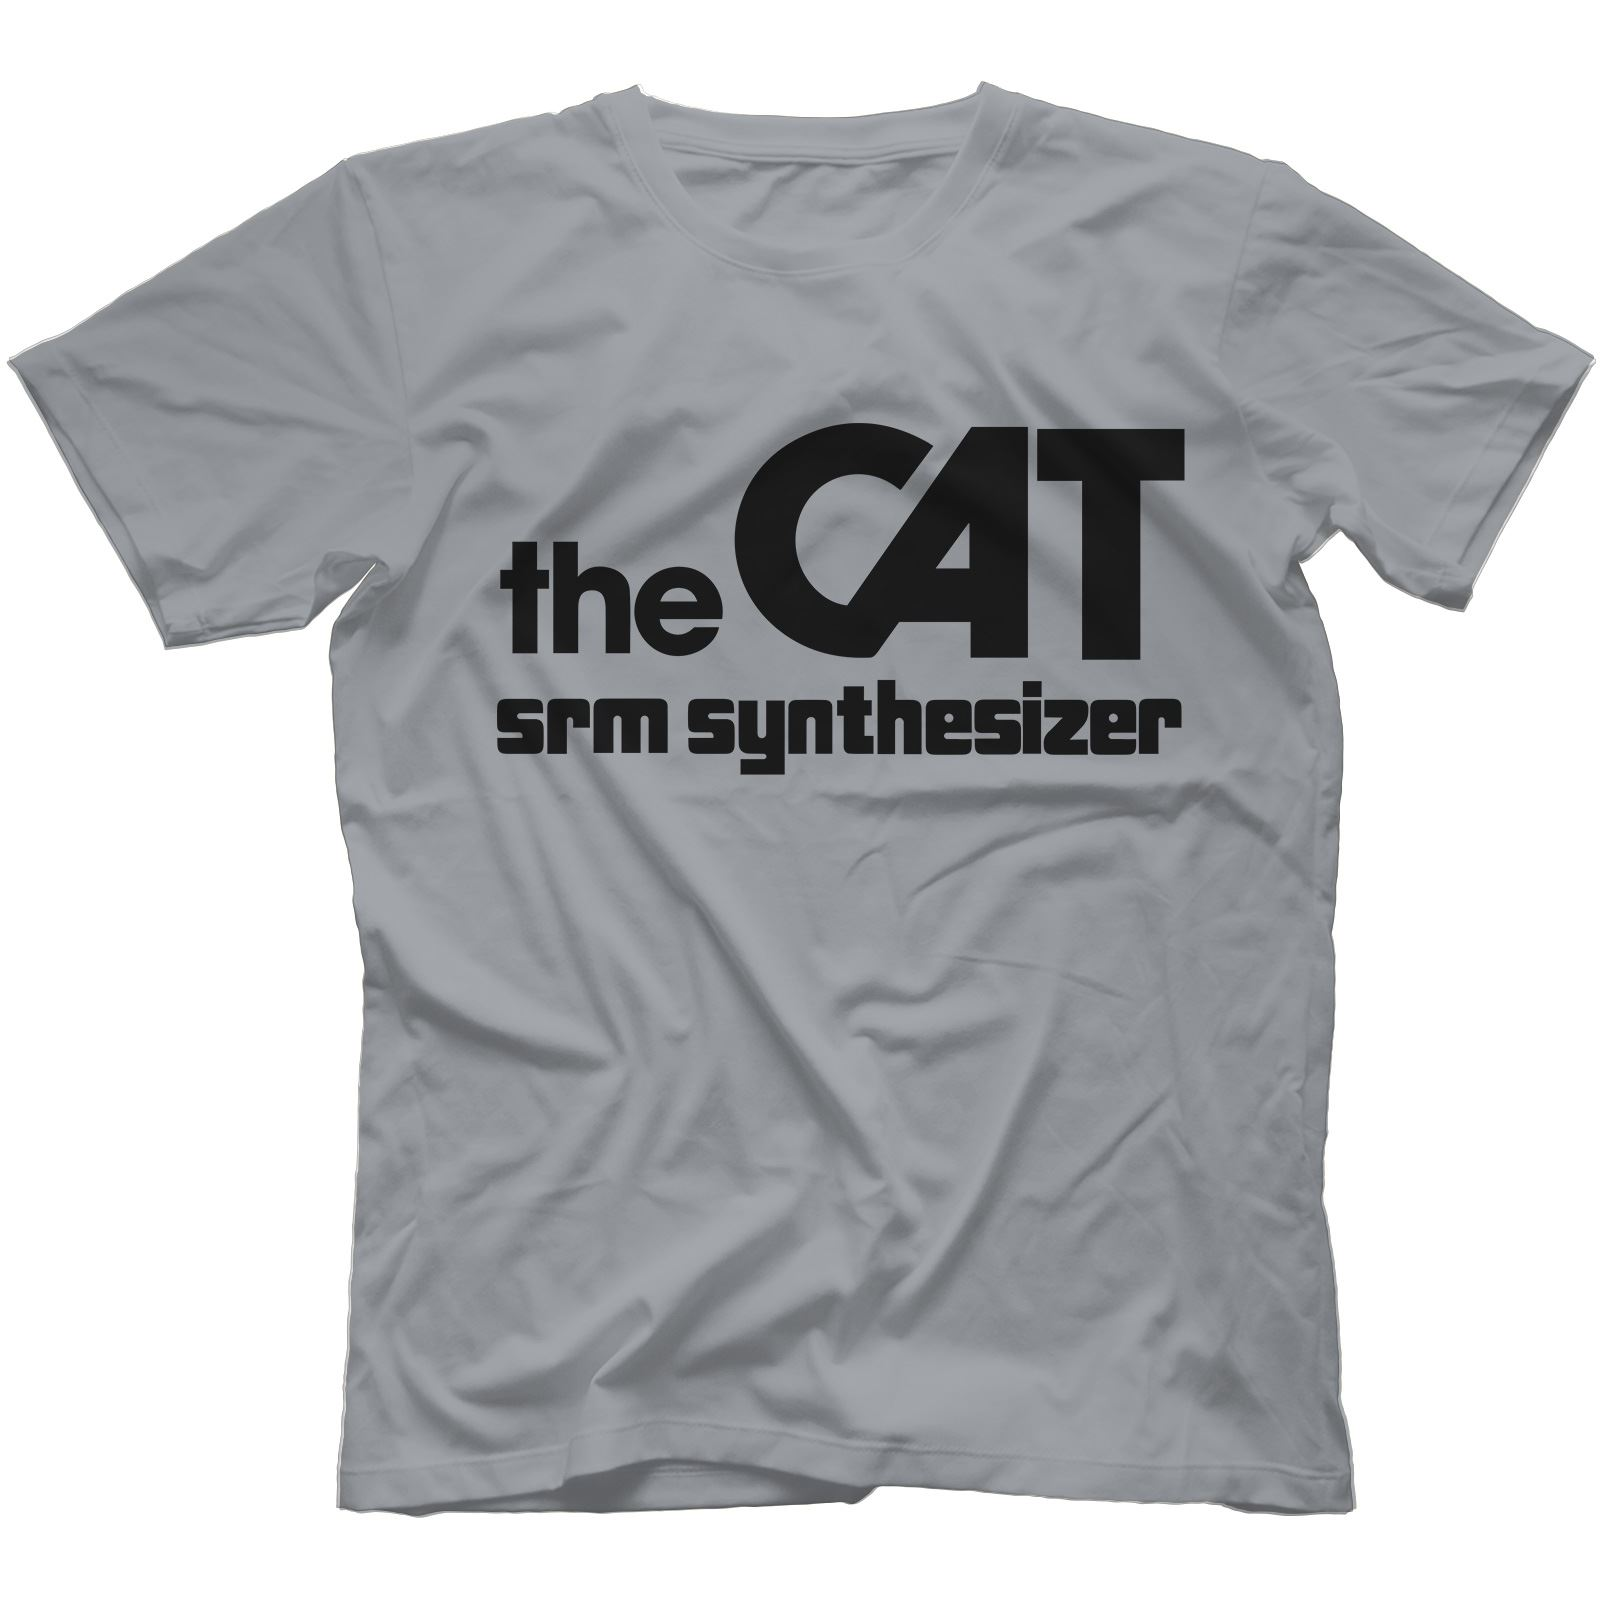 The-Cat-SRM-Synthesiser-T-Shirt-100-Cotton-Retro-Analog-Arp-Odyssey Indexbild 26